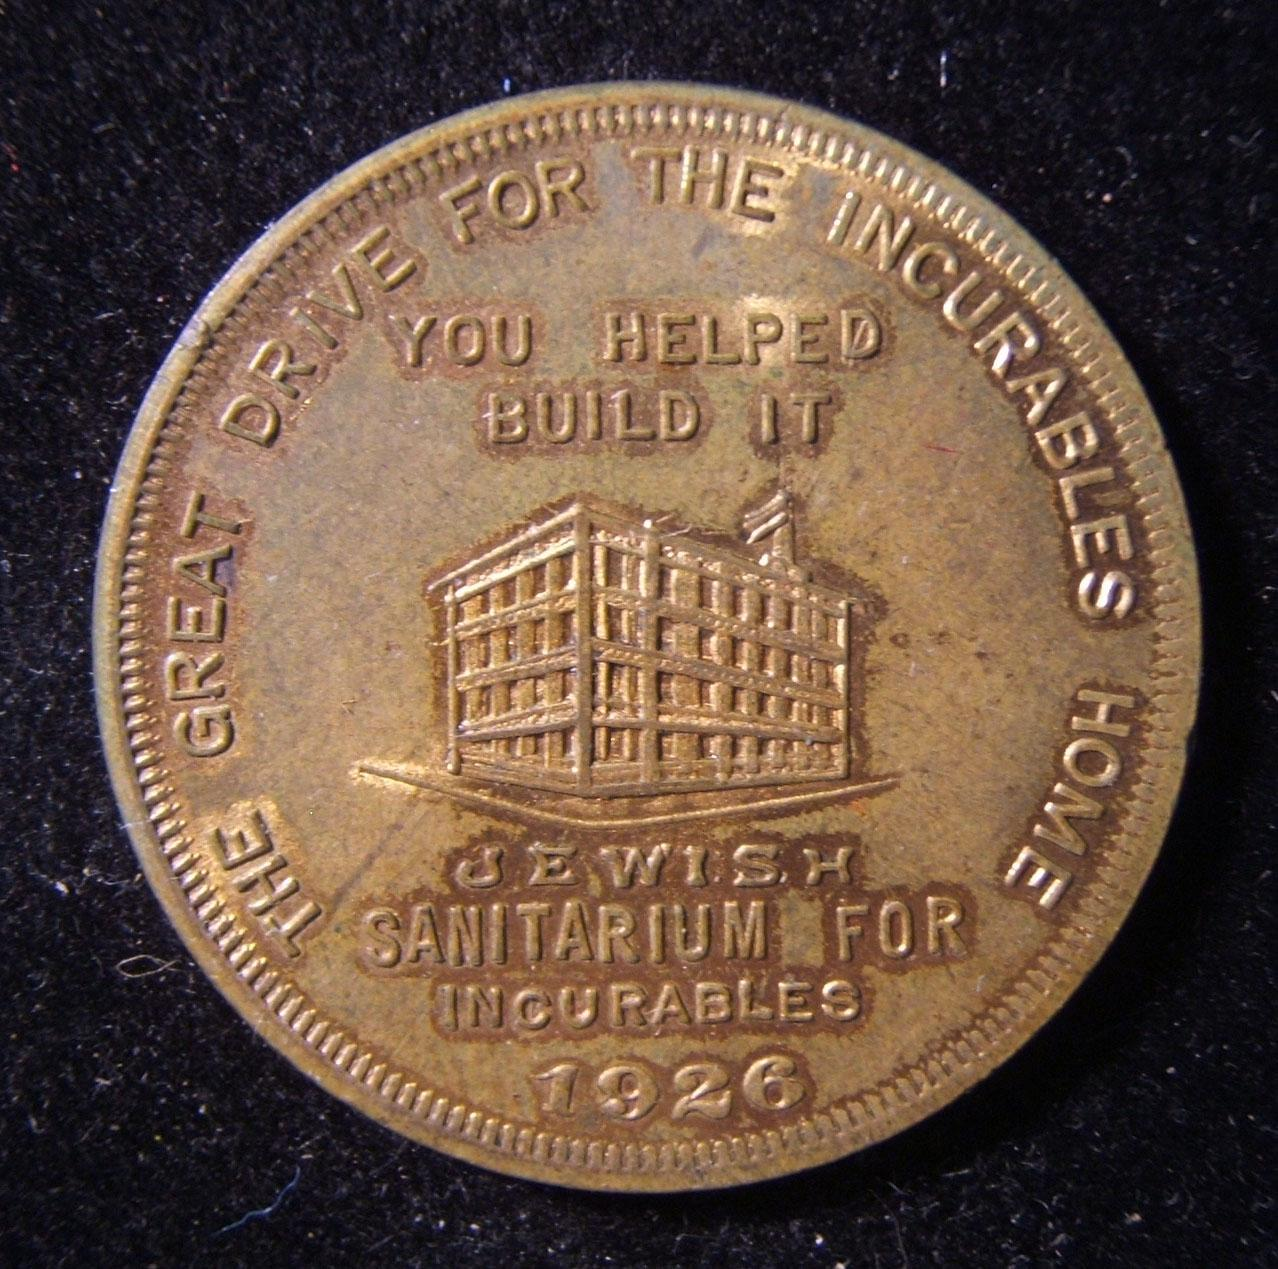 US > New York: $1 donation token for Jewish Sanitarium for Incurables, 1926; size: 33mm; weight: 10.1g. Obverse depicts image of the structure with legend